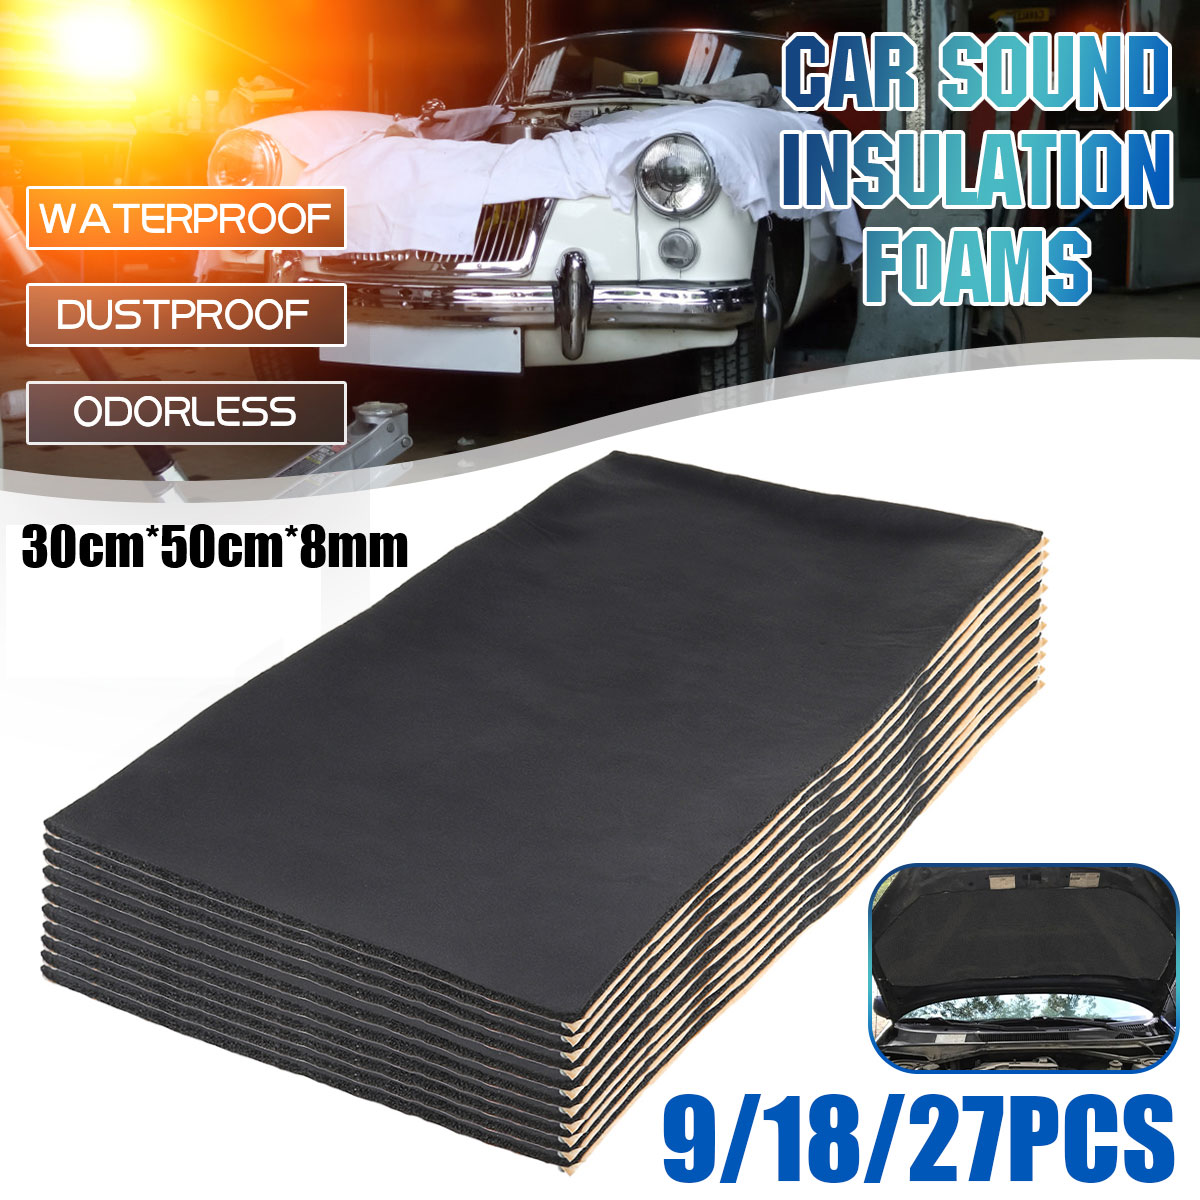 30x50cm 8mm Car Sound Proofing Mats Anti-noise Deadening Firewall Pad Engine Cover Sound Heat Insulation Cotton